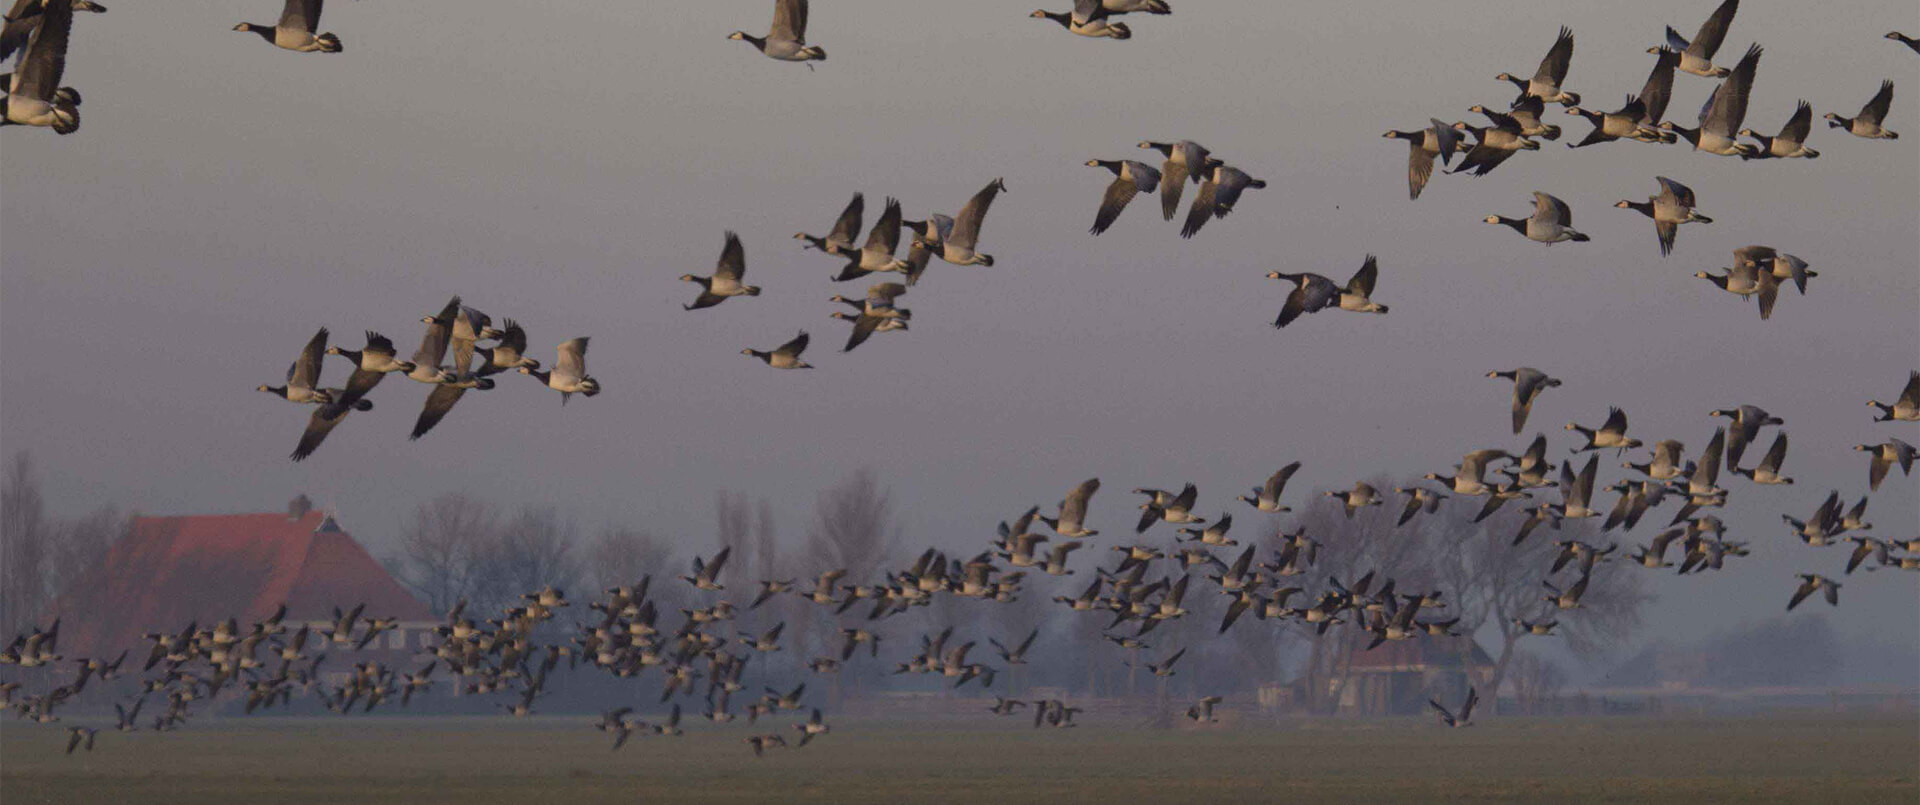 The Netherlands: Geese galore and a lot more!